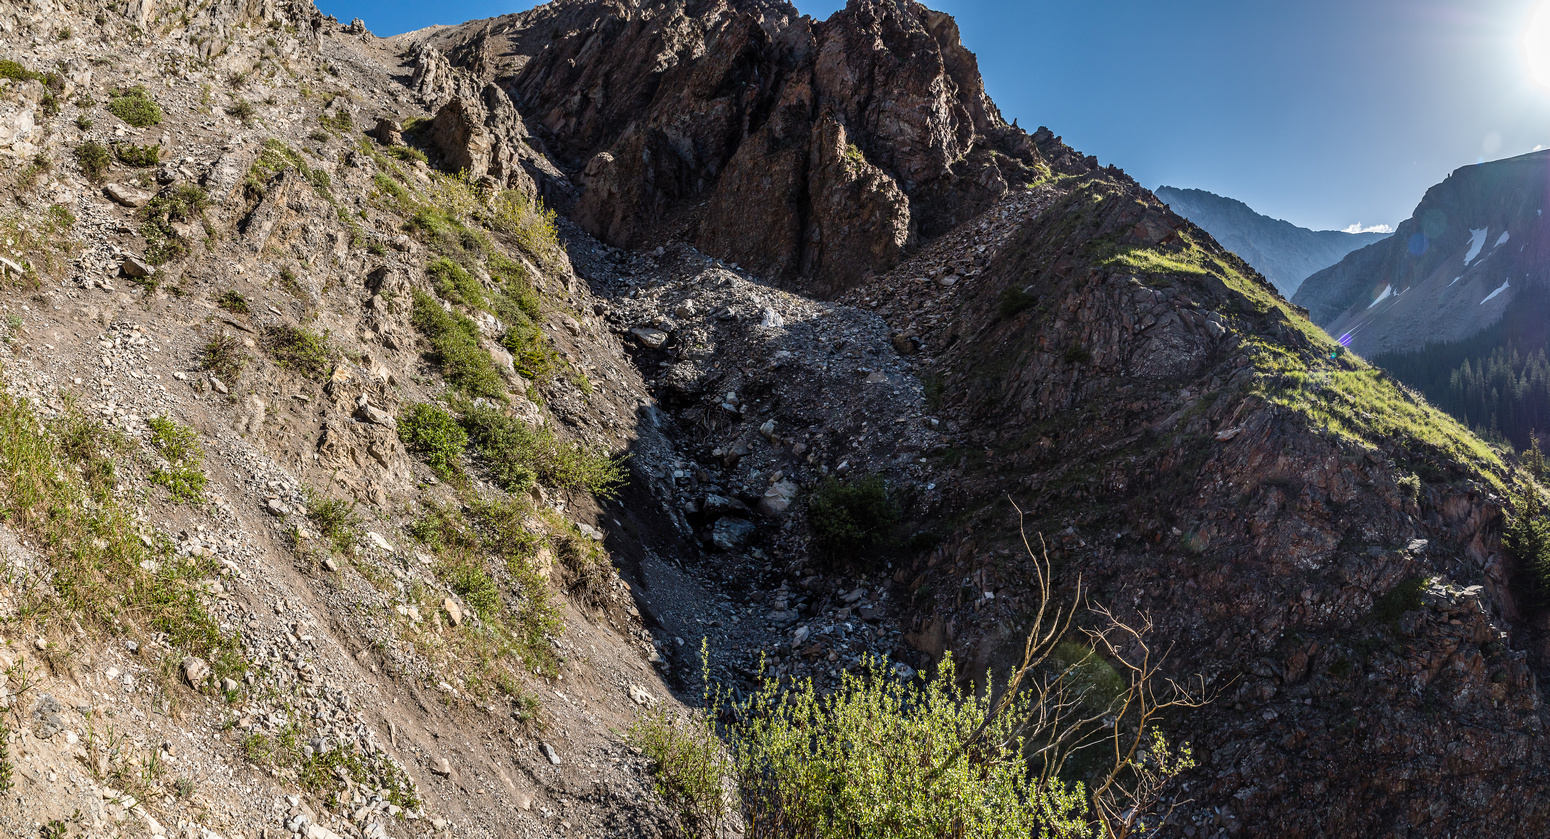 Just one example of the interesting avalanche gully crossings along the trail. Typically they are marked with cairns.